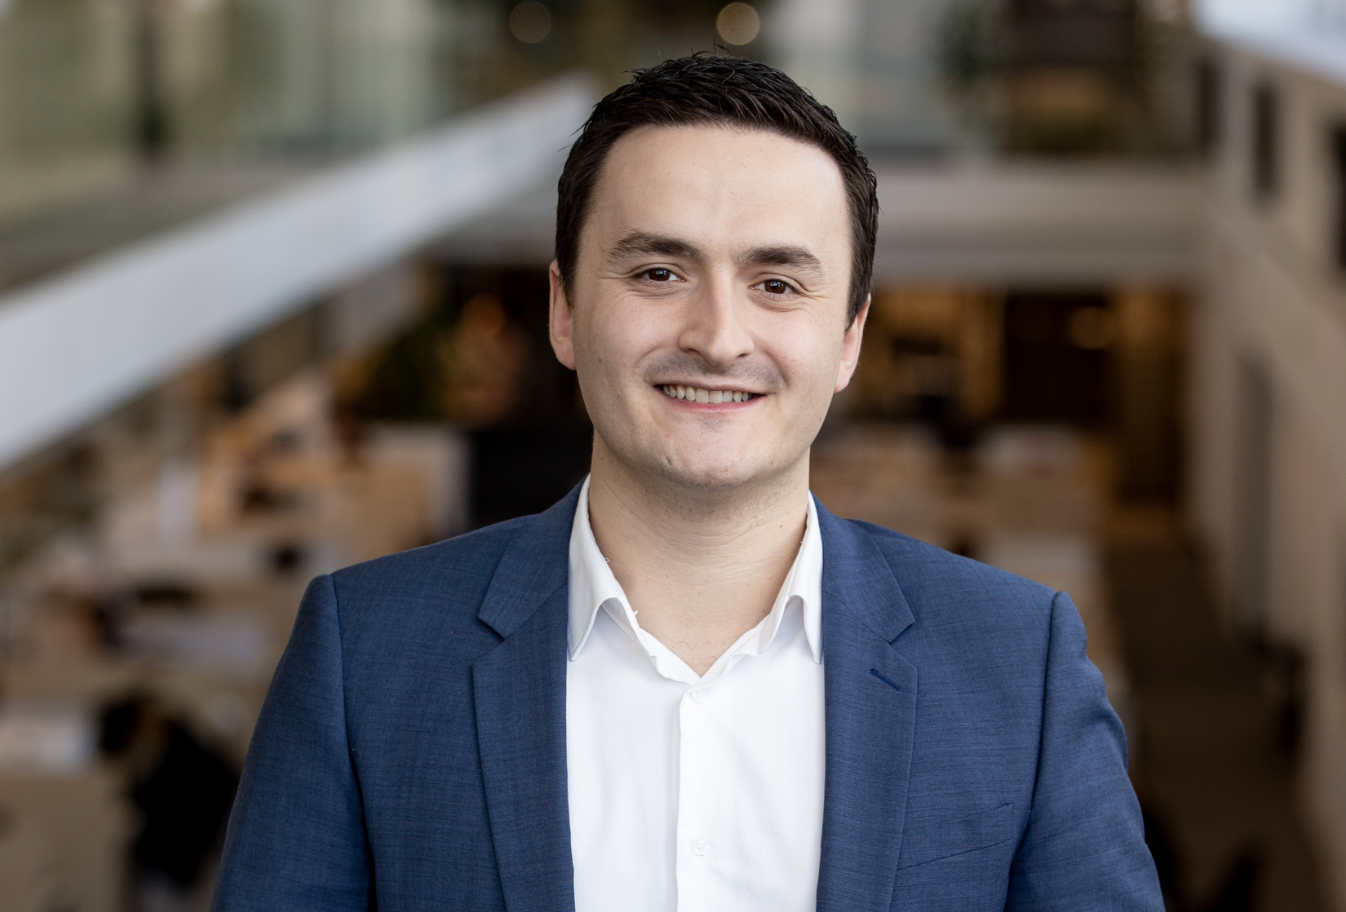 Geoffrey Bernard promoted to Vice-President of Growth at La Presse